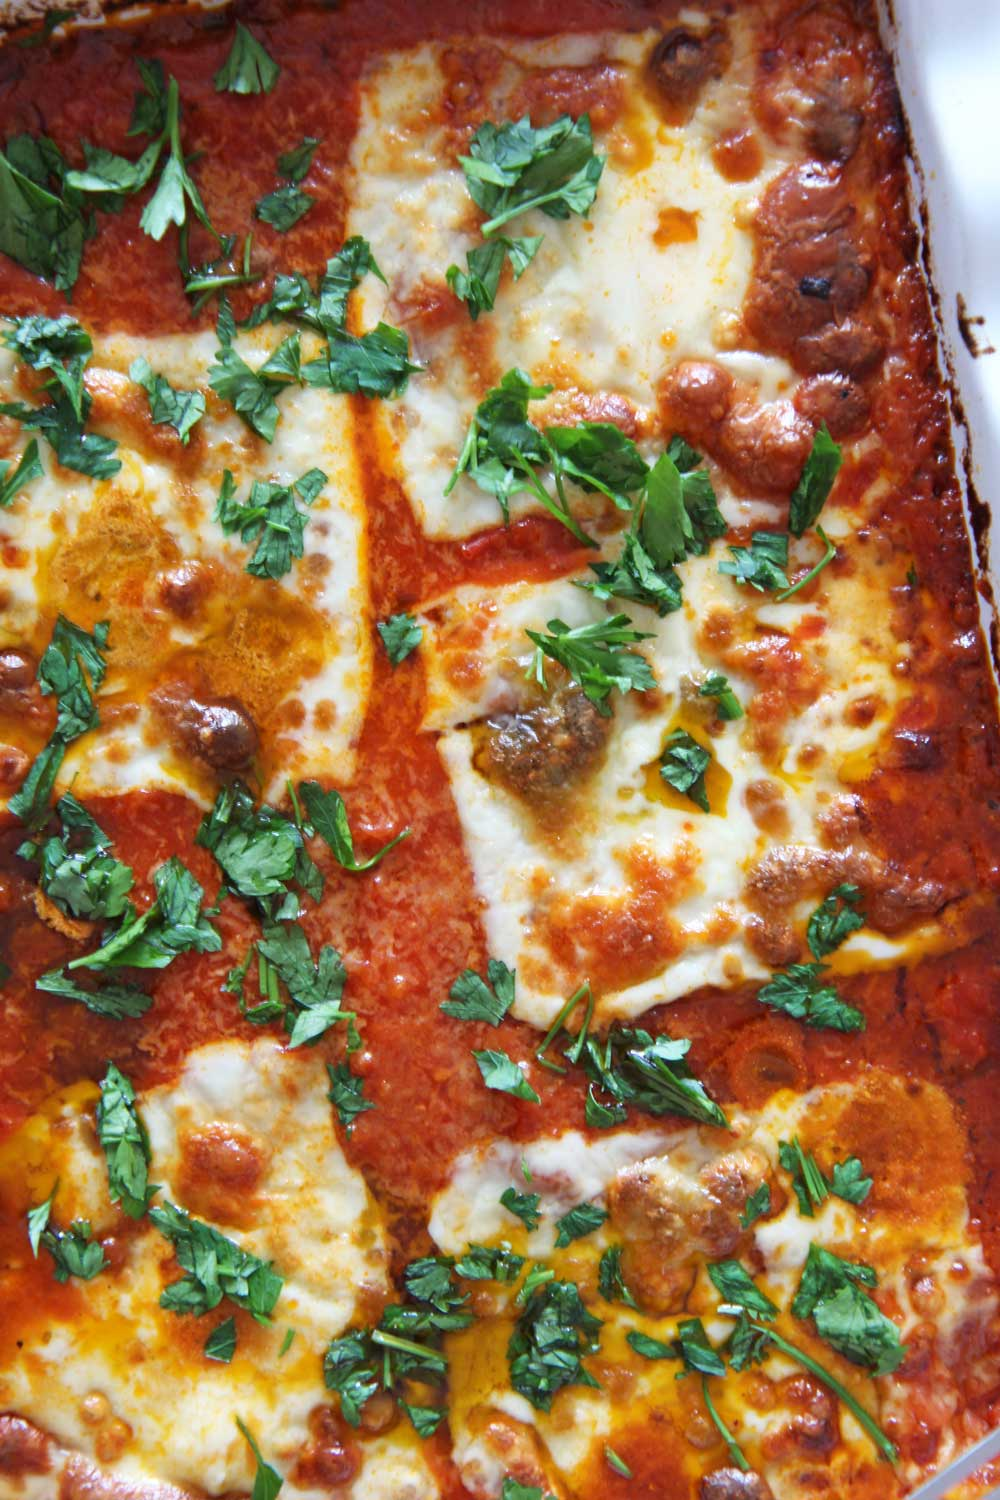 5 Ingredient Cheesy Lasagna. Ricotta, marinara, mozzarella, pesto, and frozen ravioli is all you need. This is a perfect busy night pasta dinner. At my hiome we call it Italian recipe night. Happy cooking! www.chophappy.com #lasagna #5ingredients